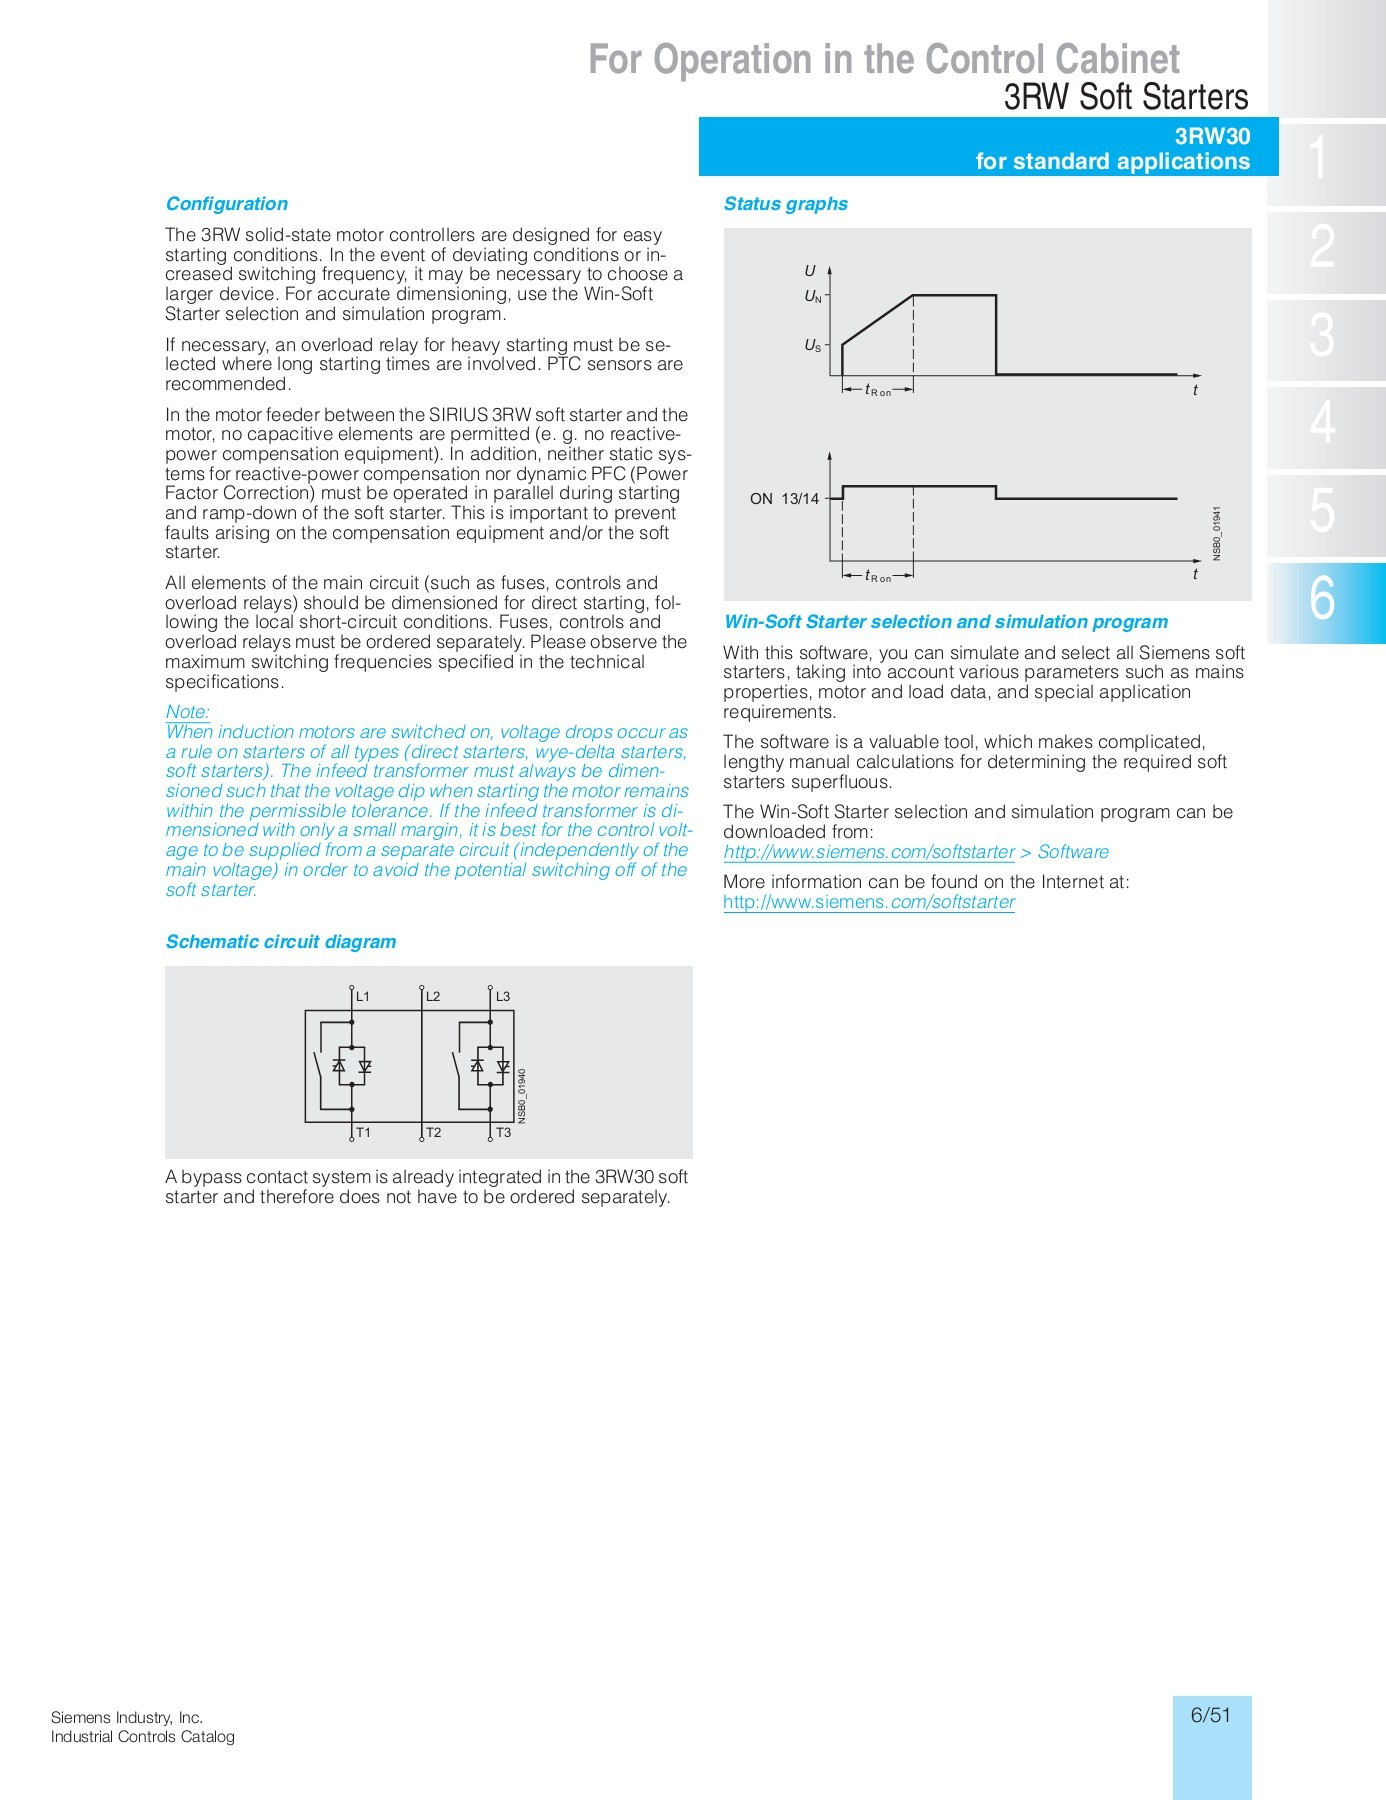 hight resolution of motor starters soft starters and load feeders pages 51 100 text version fliphtml5